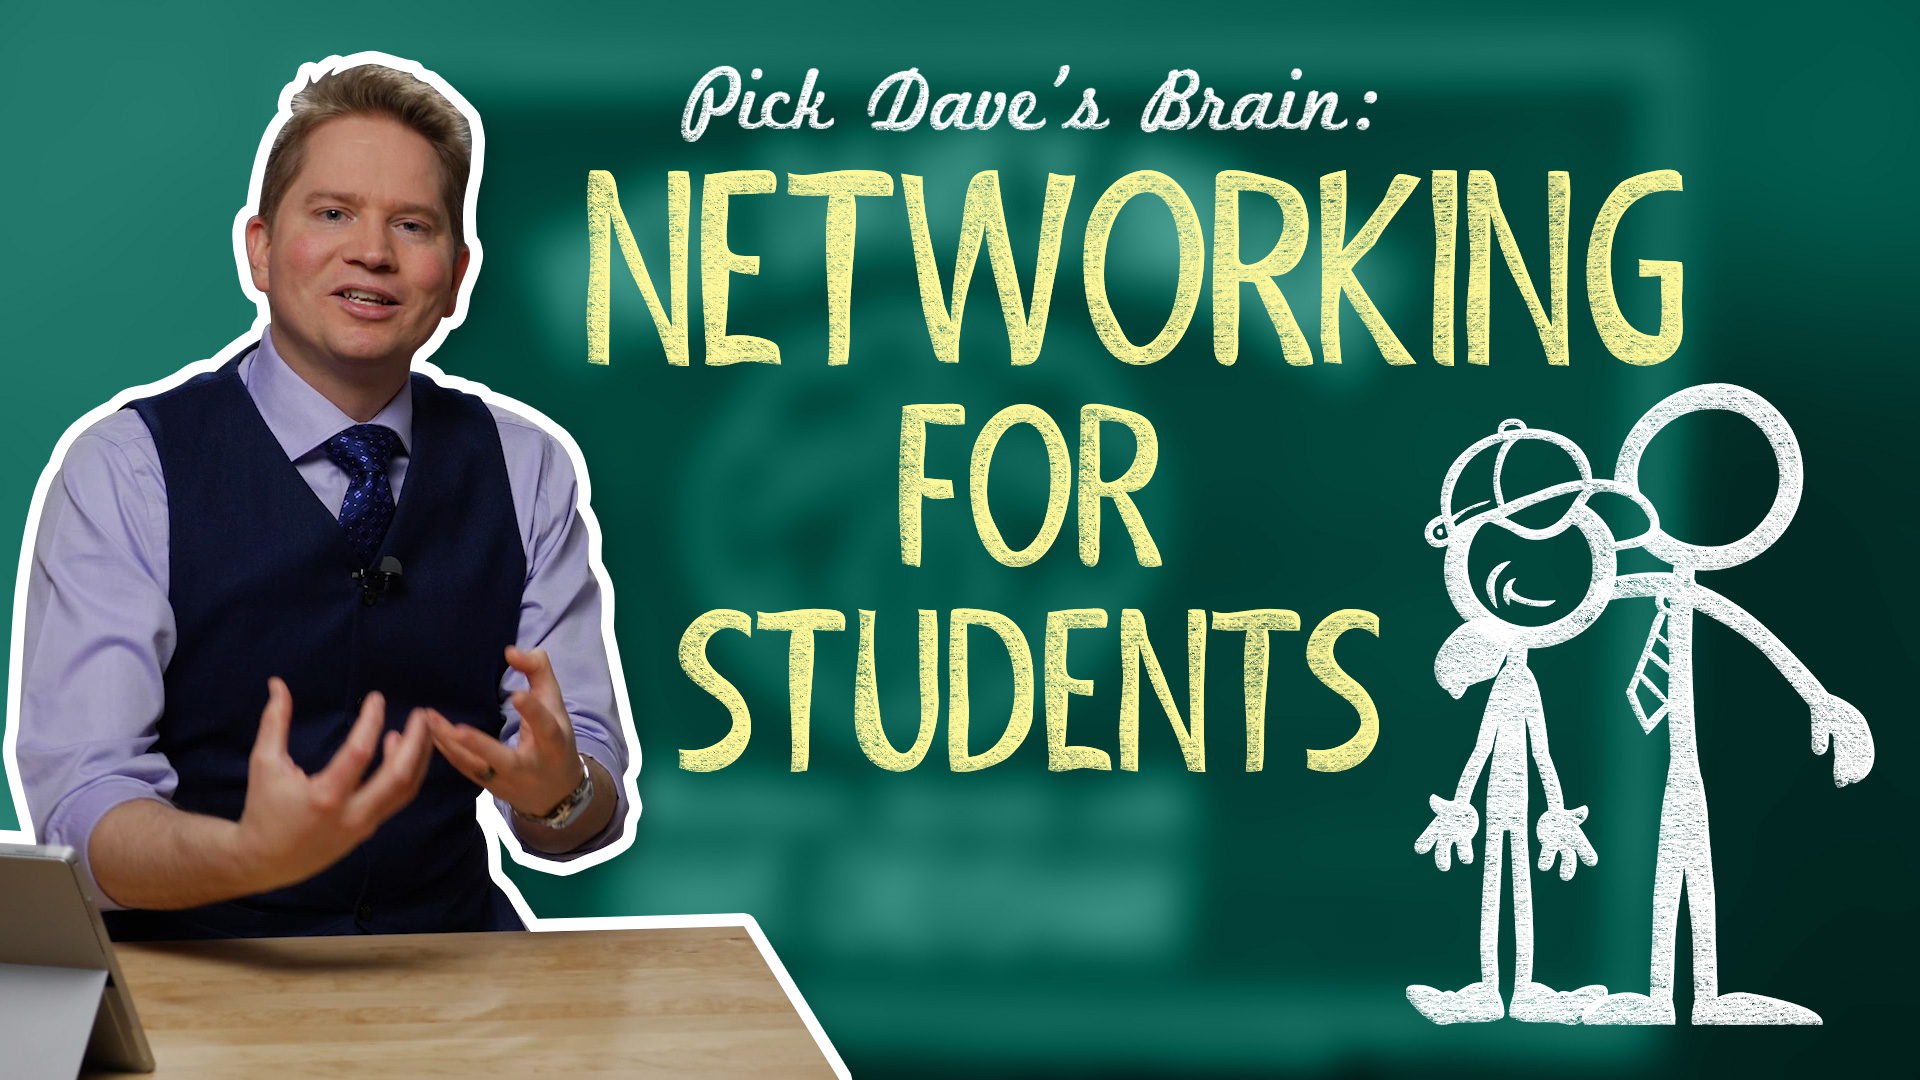 Professional networking for students – Pick Dave's Brain